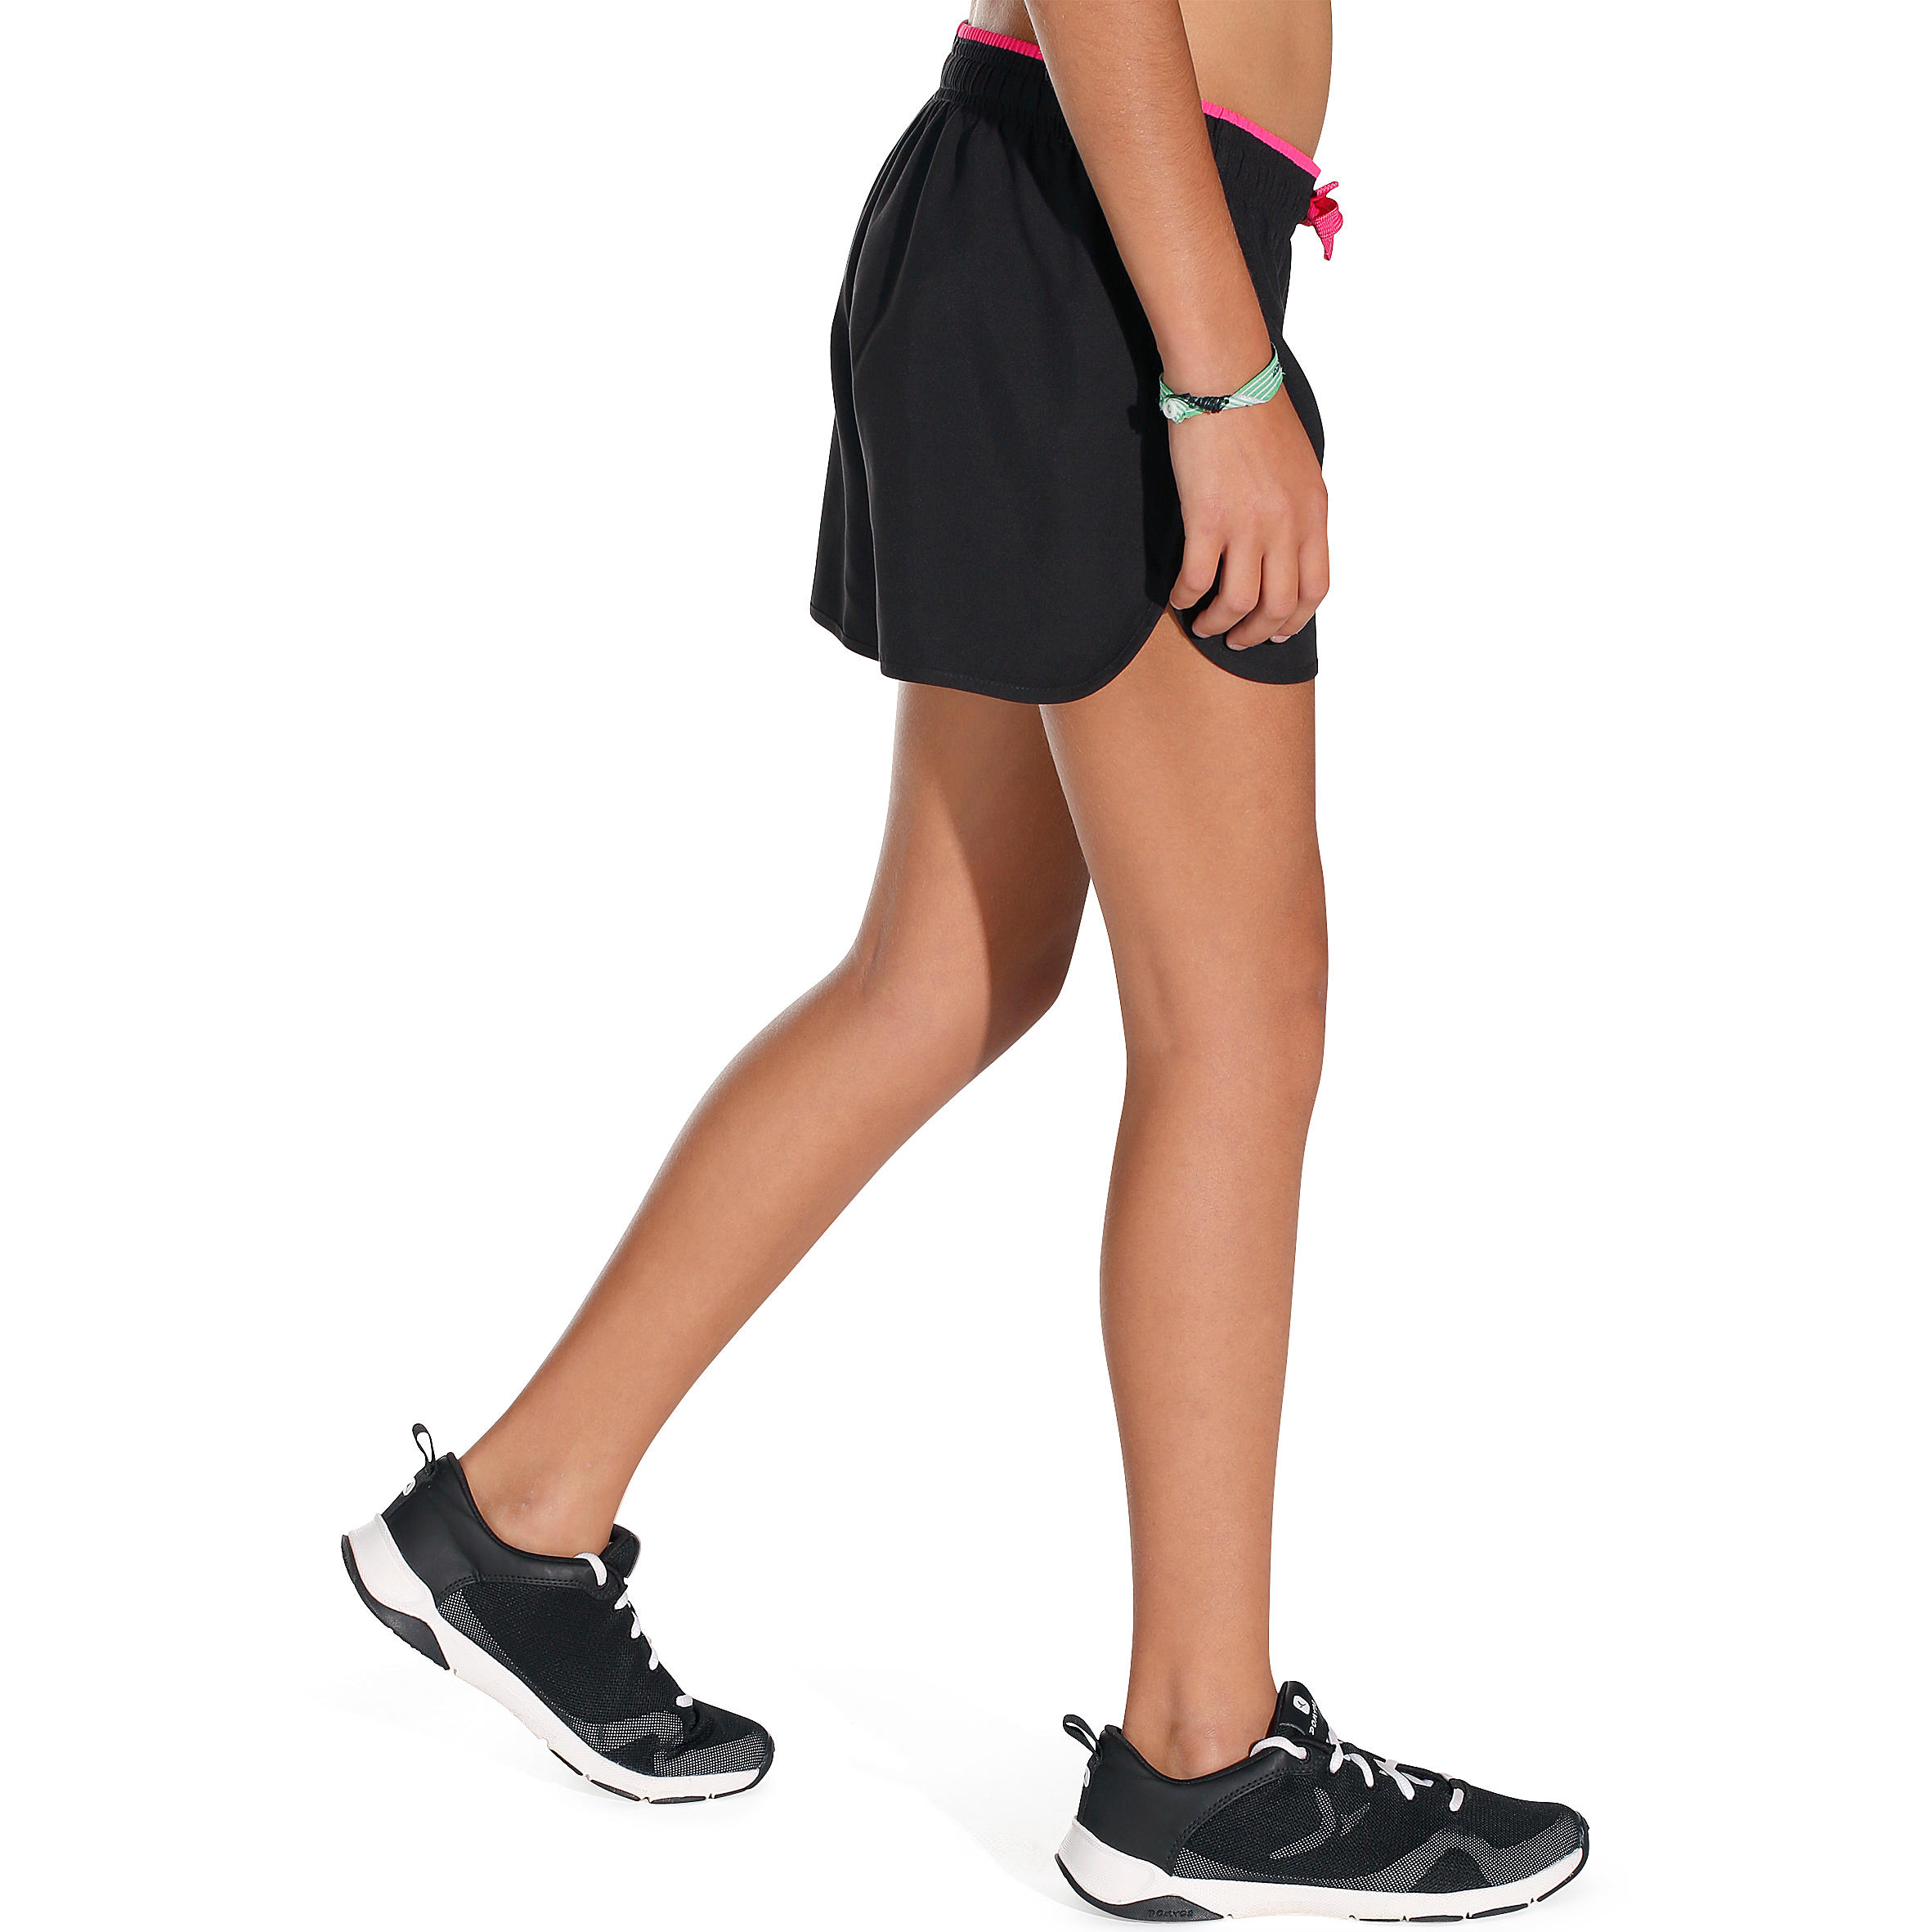 Energy Girls' Gym Shorts - Black/Pink